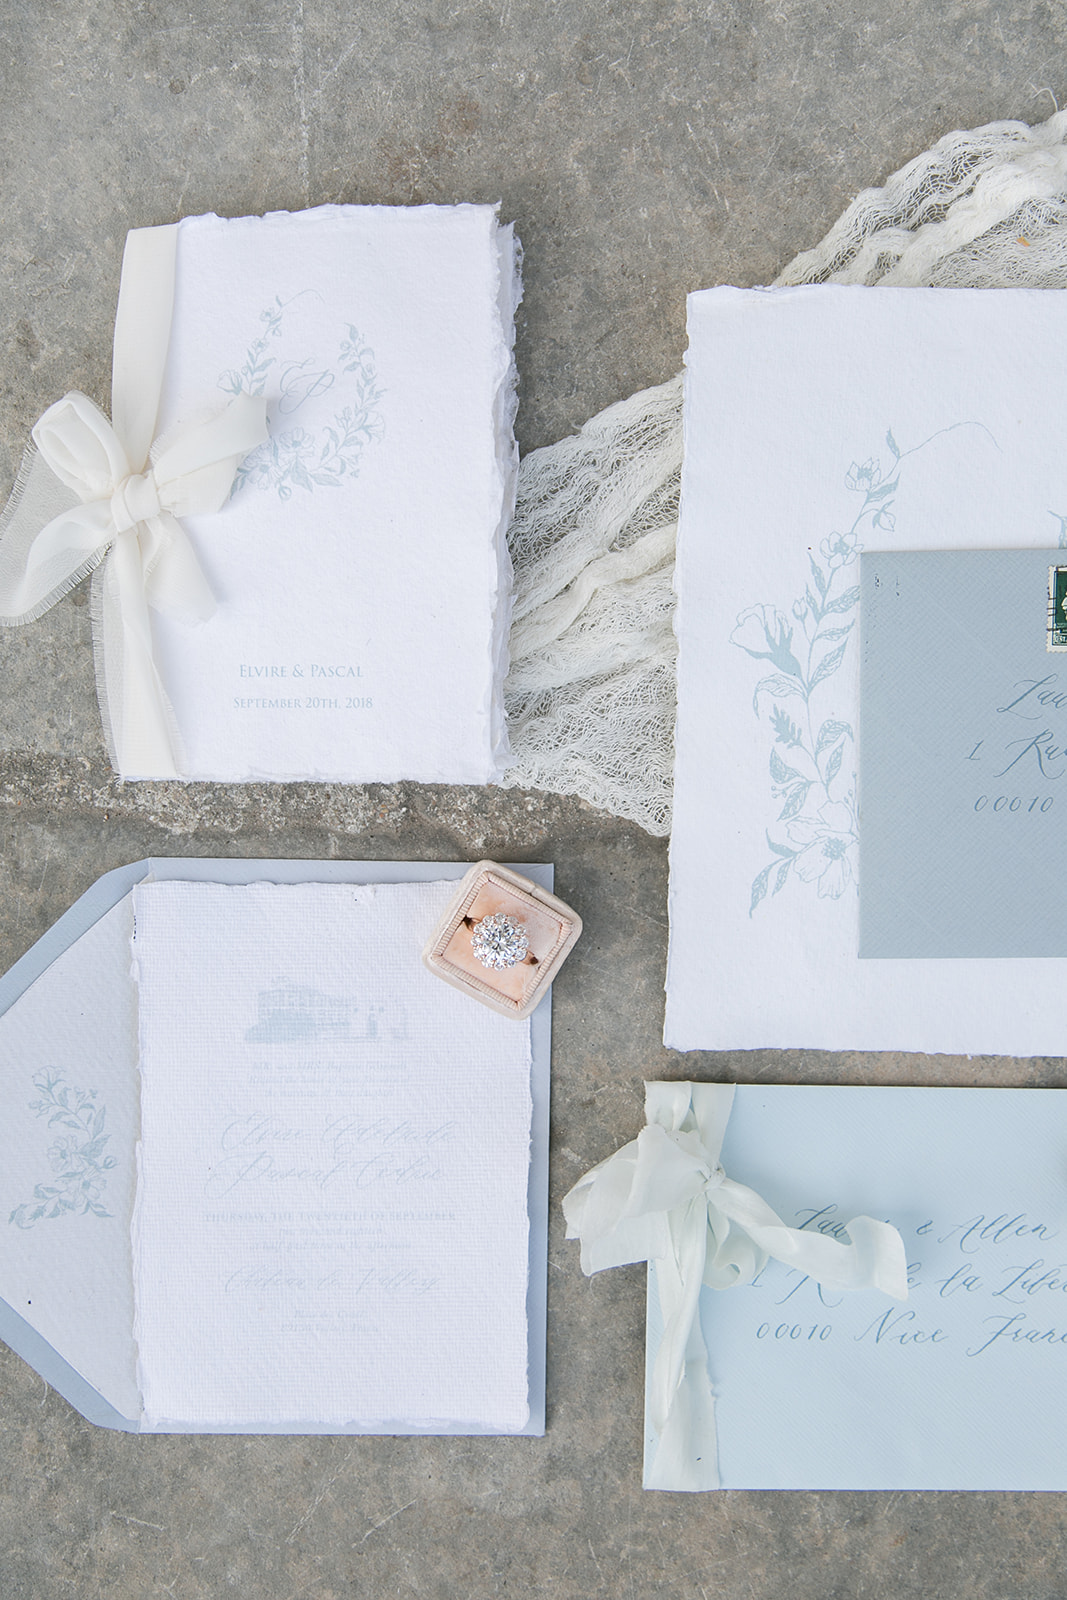 french inspired wedding invitation calligraphy idea with silk ribbons and gauze table runner